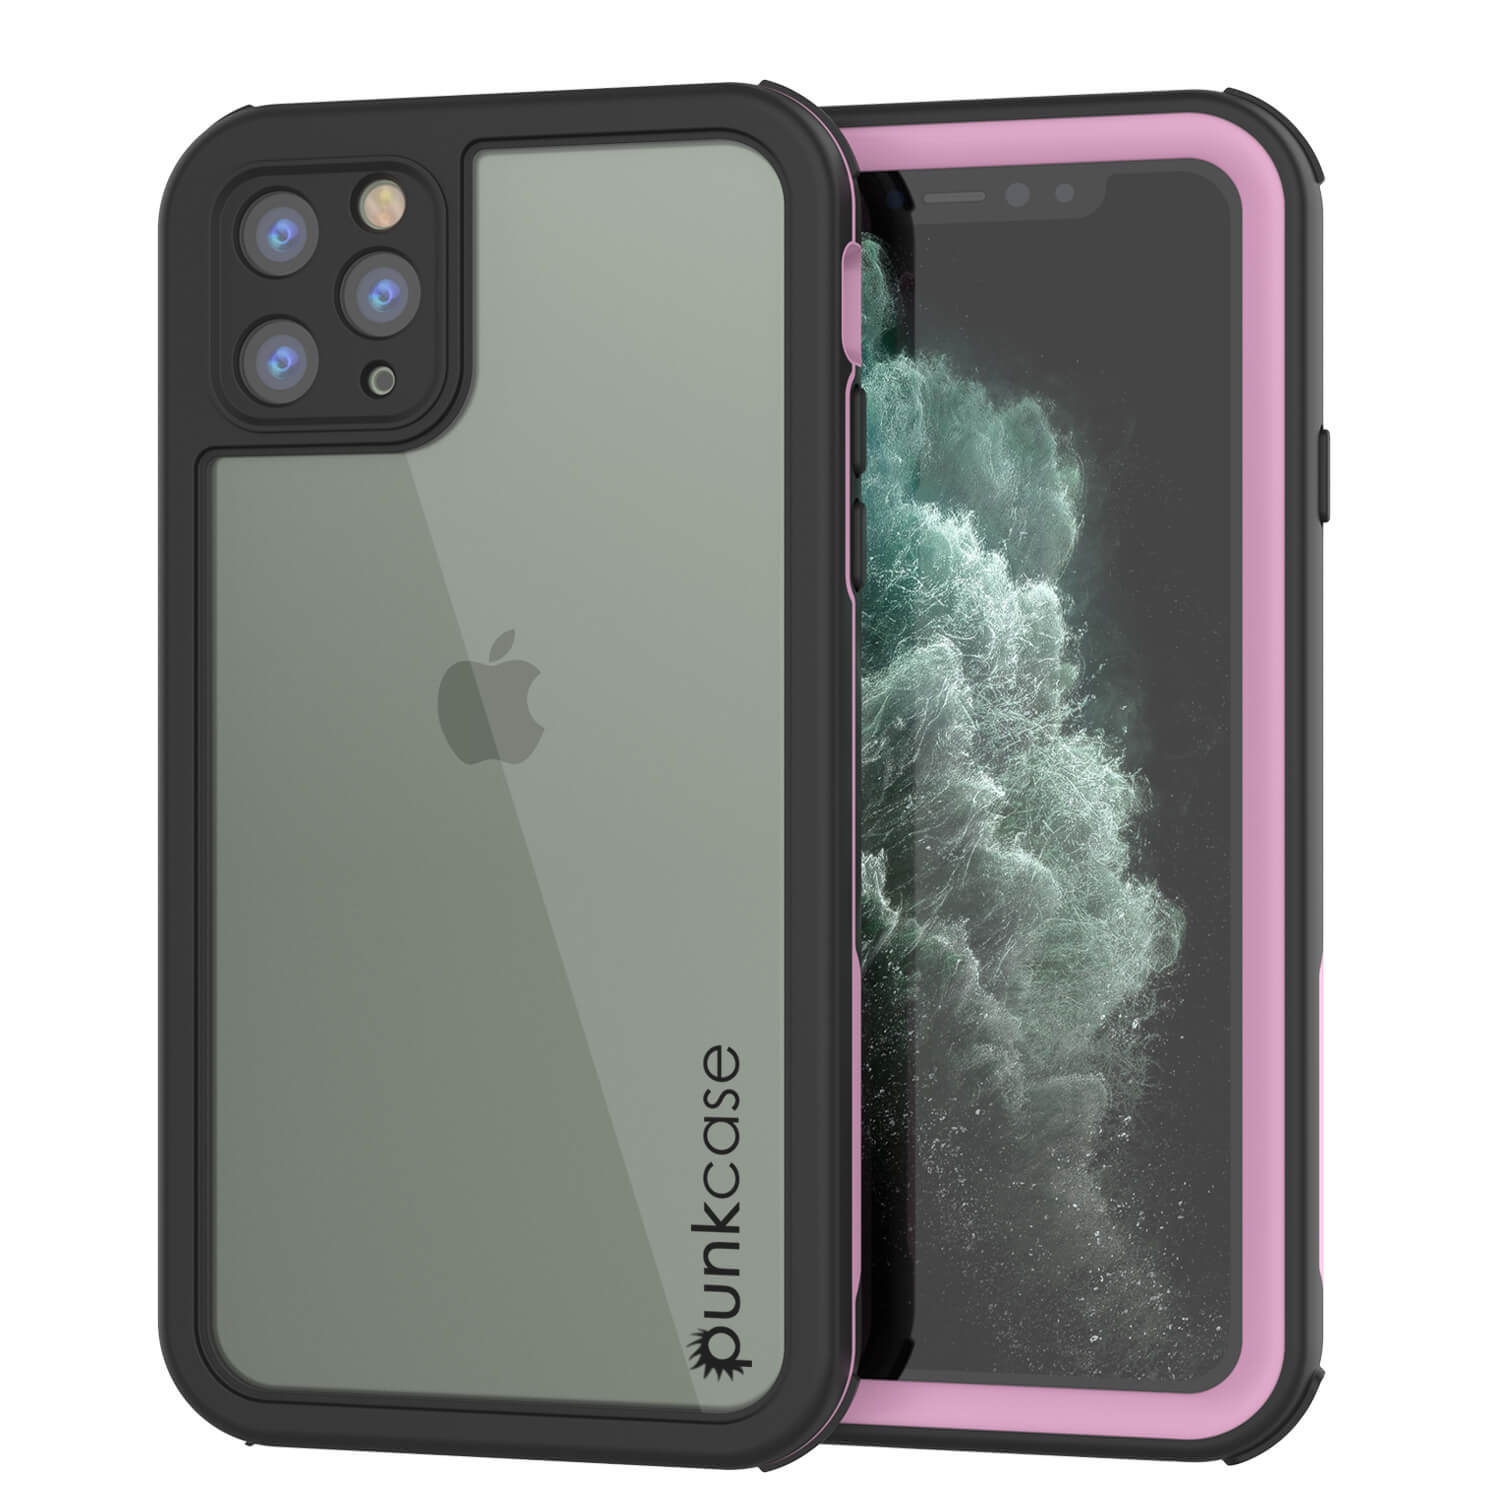 iPhone 11 Pro Max Waterproof IP68 Case, Punkcase [pink] [Rapture Series]  W/Built in Screen Protector